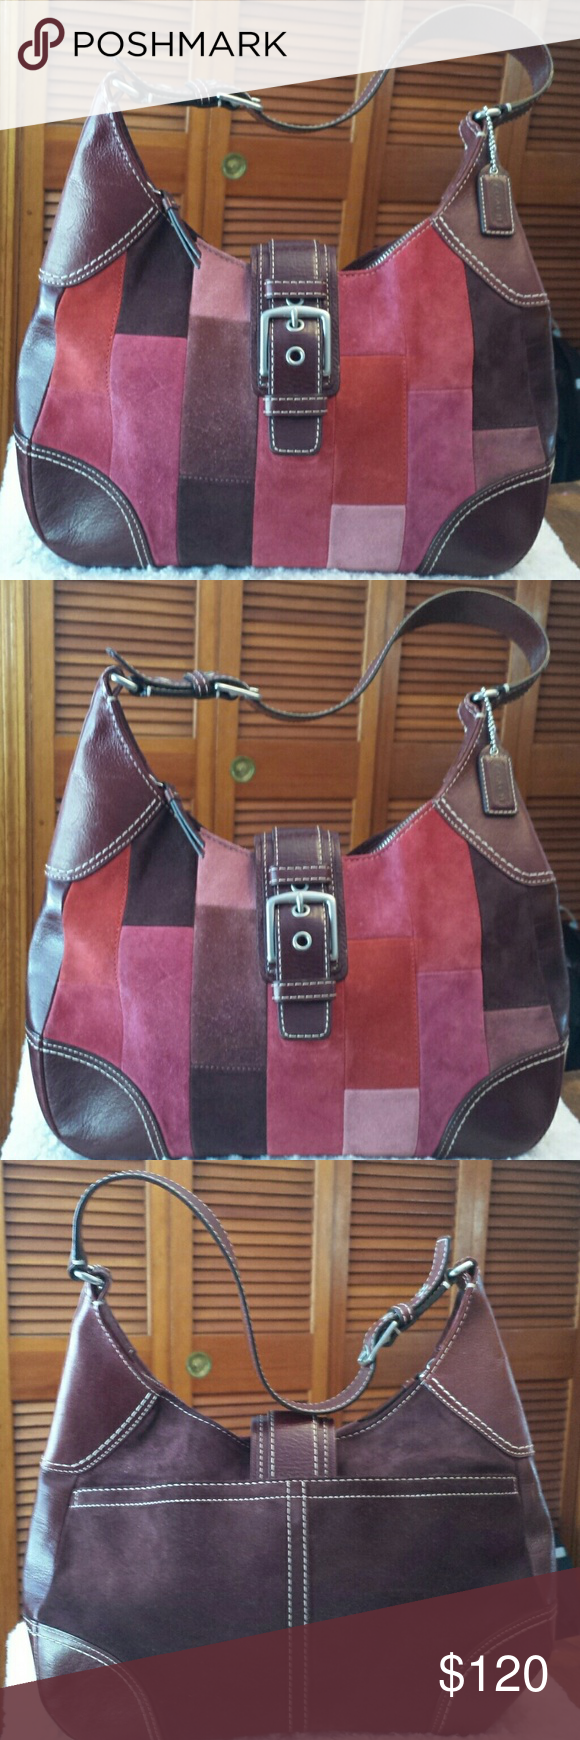 Coach Happy Holly Berry Hampton Mosaic Bag RARE-Coach Suede Happy Holly  Hampton Mosaic Hobo Bag, Creed F11217, Suede and Leather Pink, Burgundy and  Brown ... a5af9bc9db